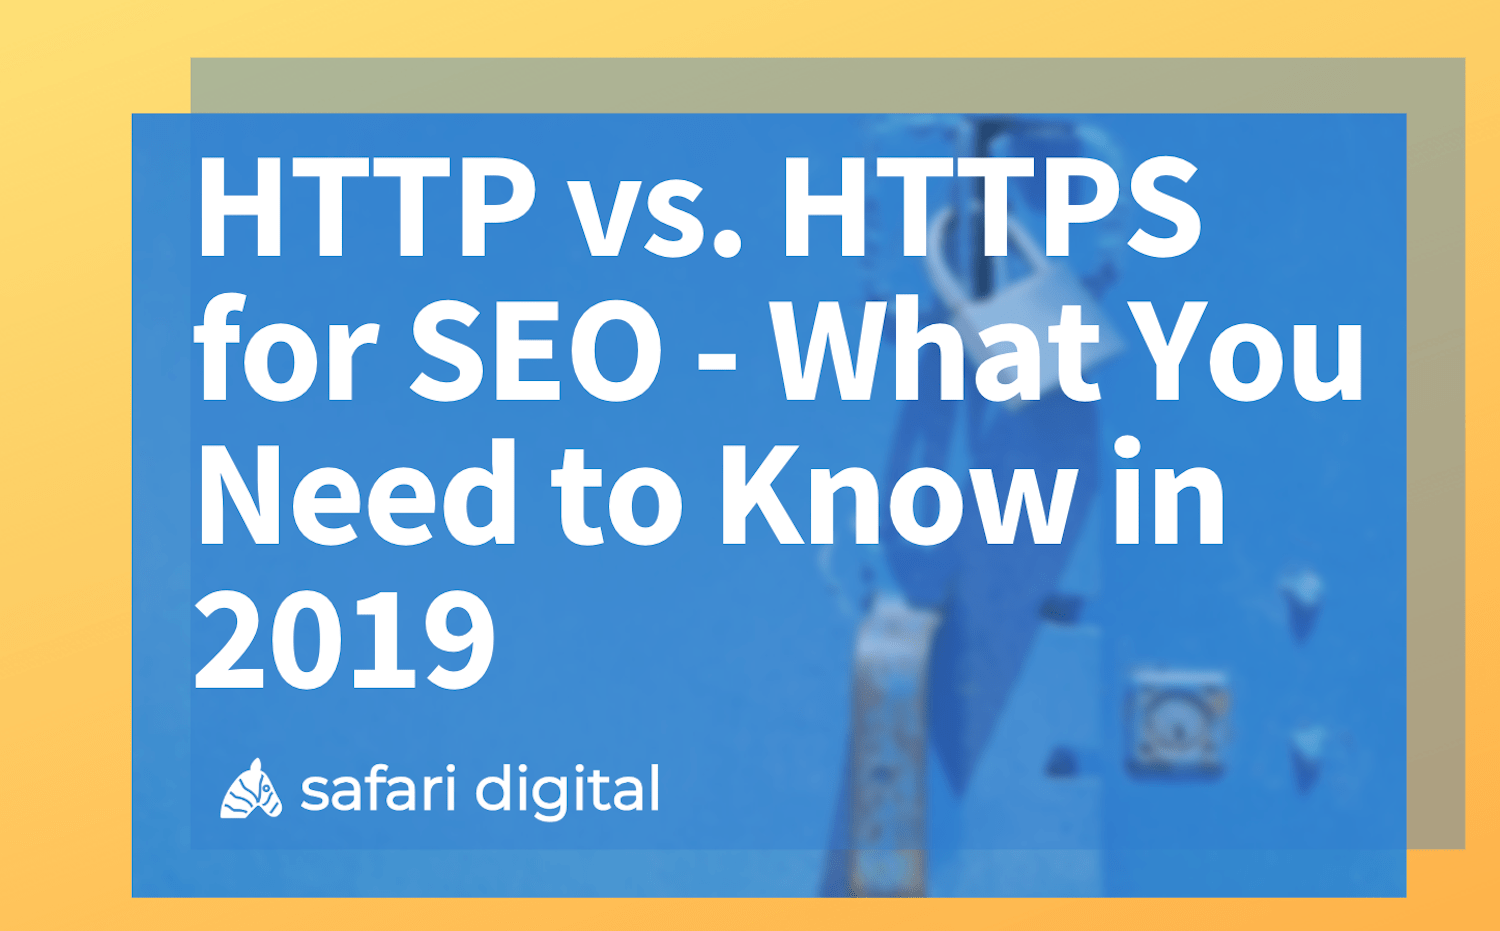 HTTP vs. HTTPS for SEO - what you need to know in 2019 banner image Large